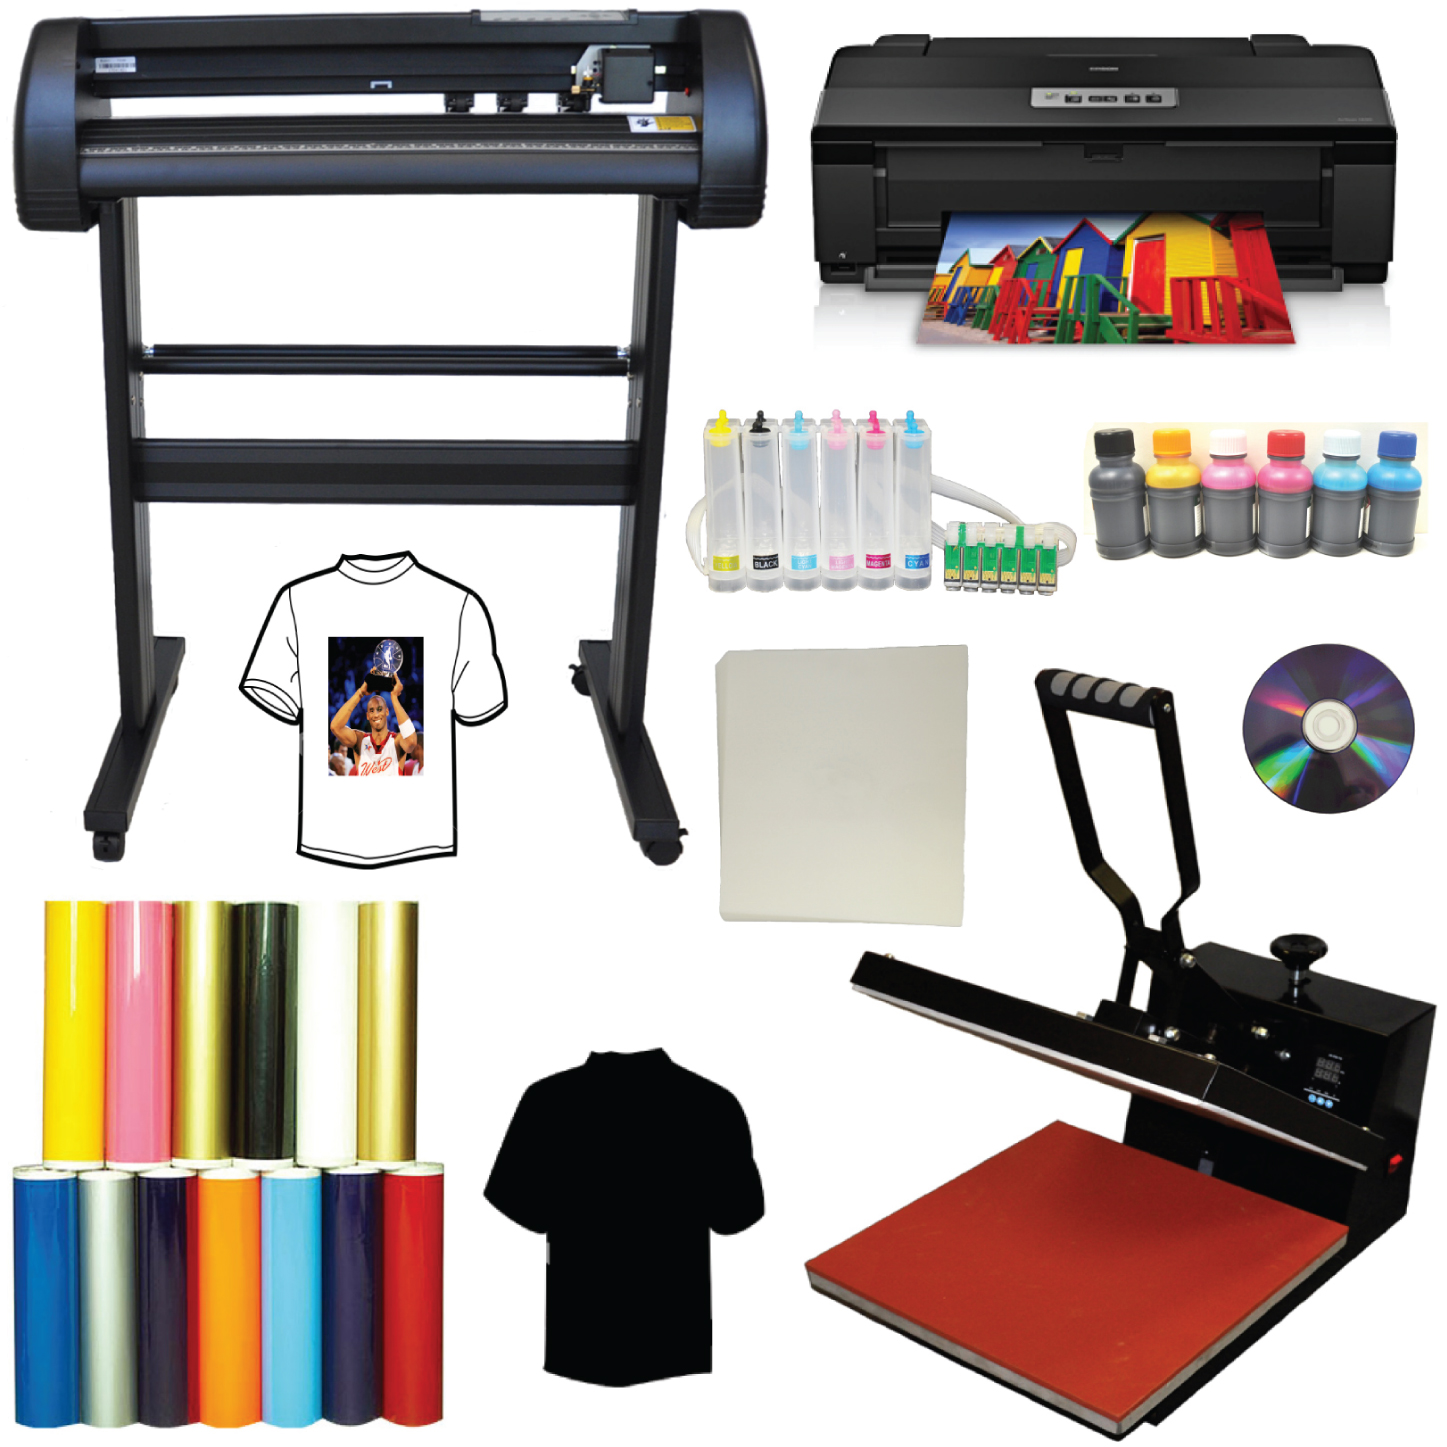 16x24 Heat Press 24 500g LaserPoint Vinyl Cutter Epson 1430 CISS